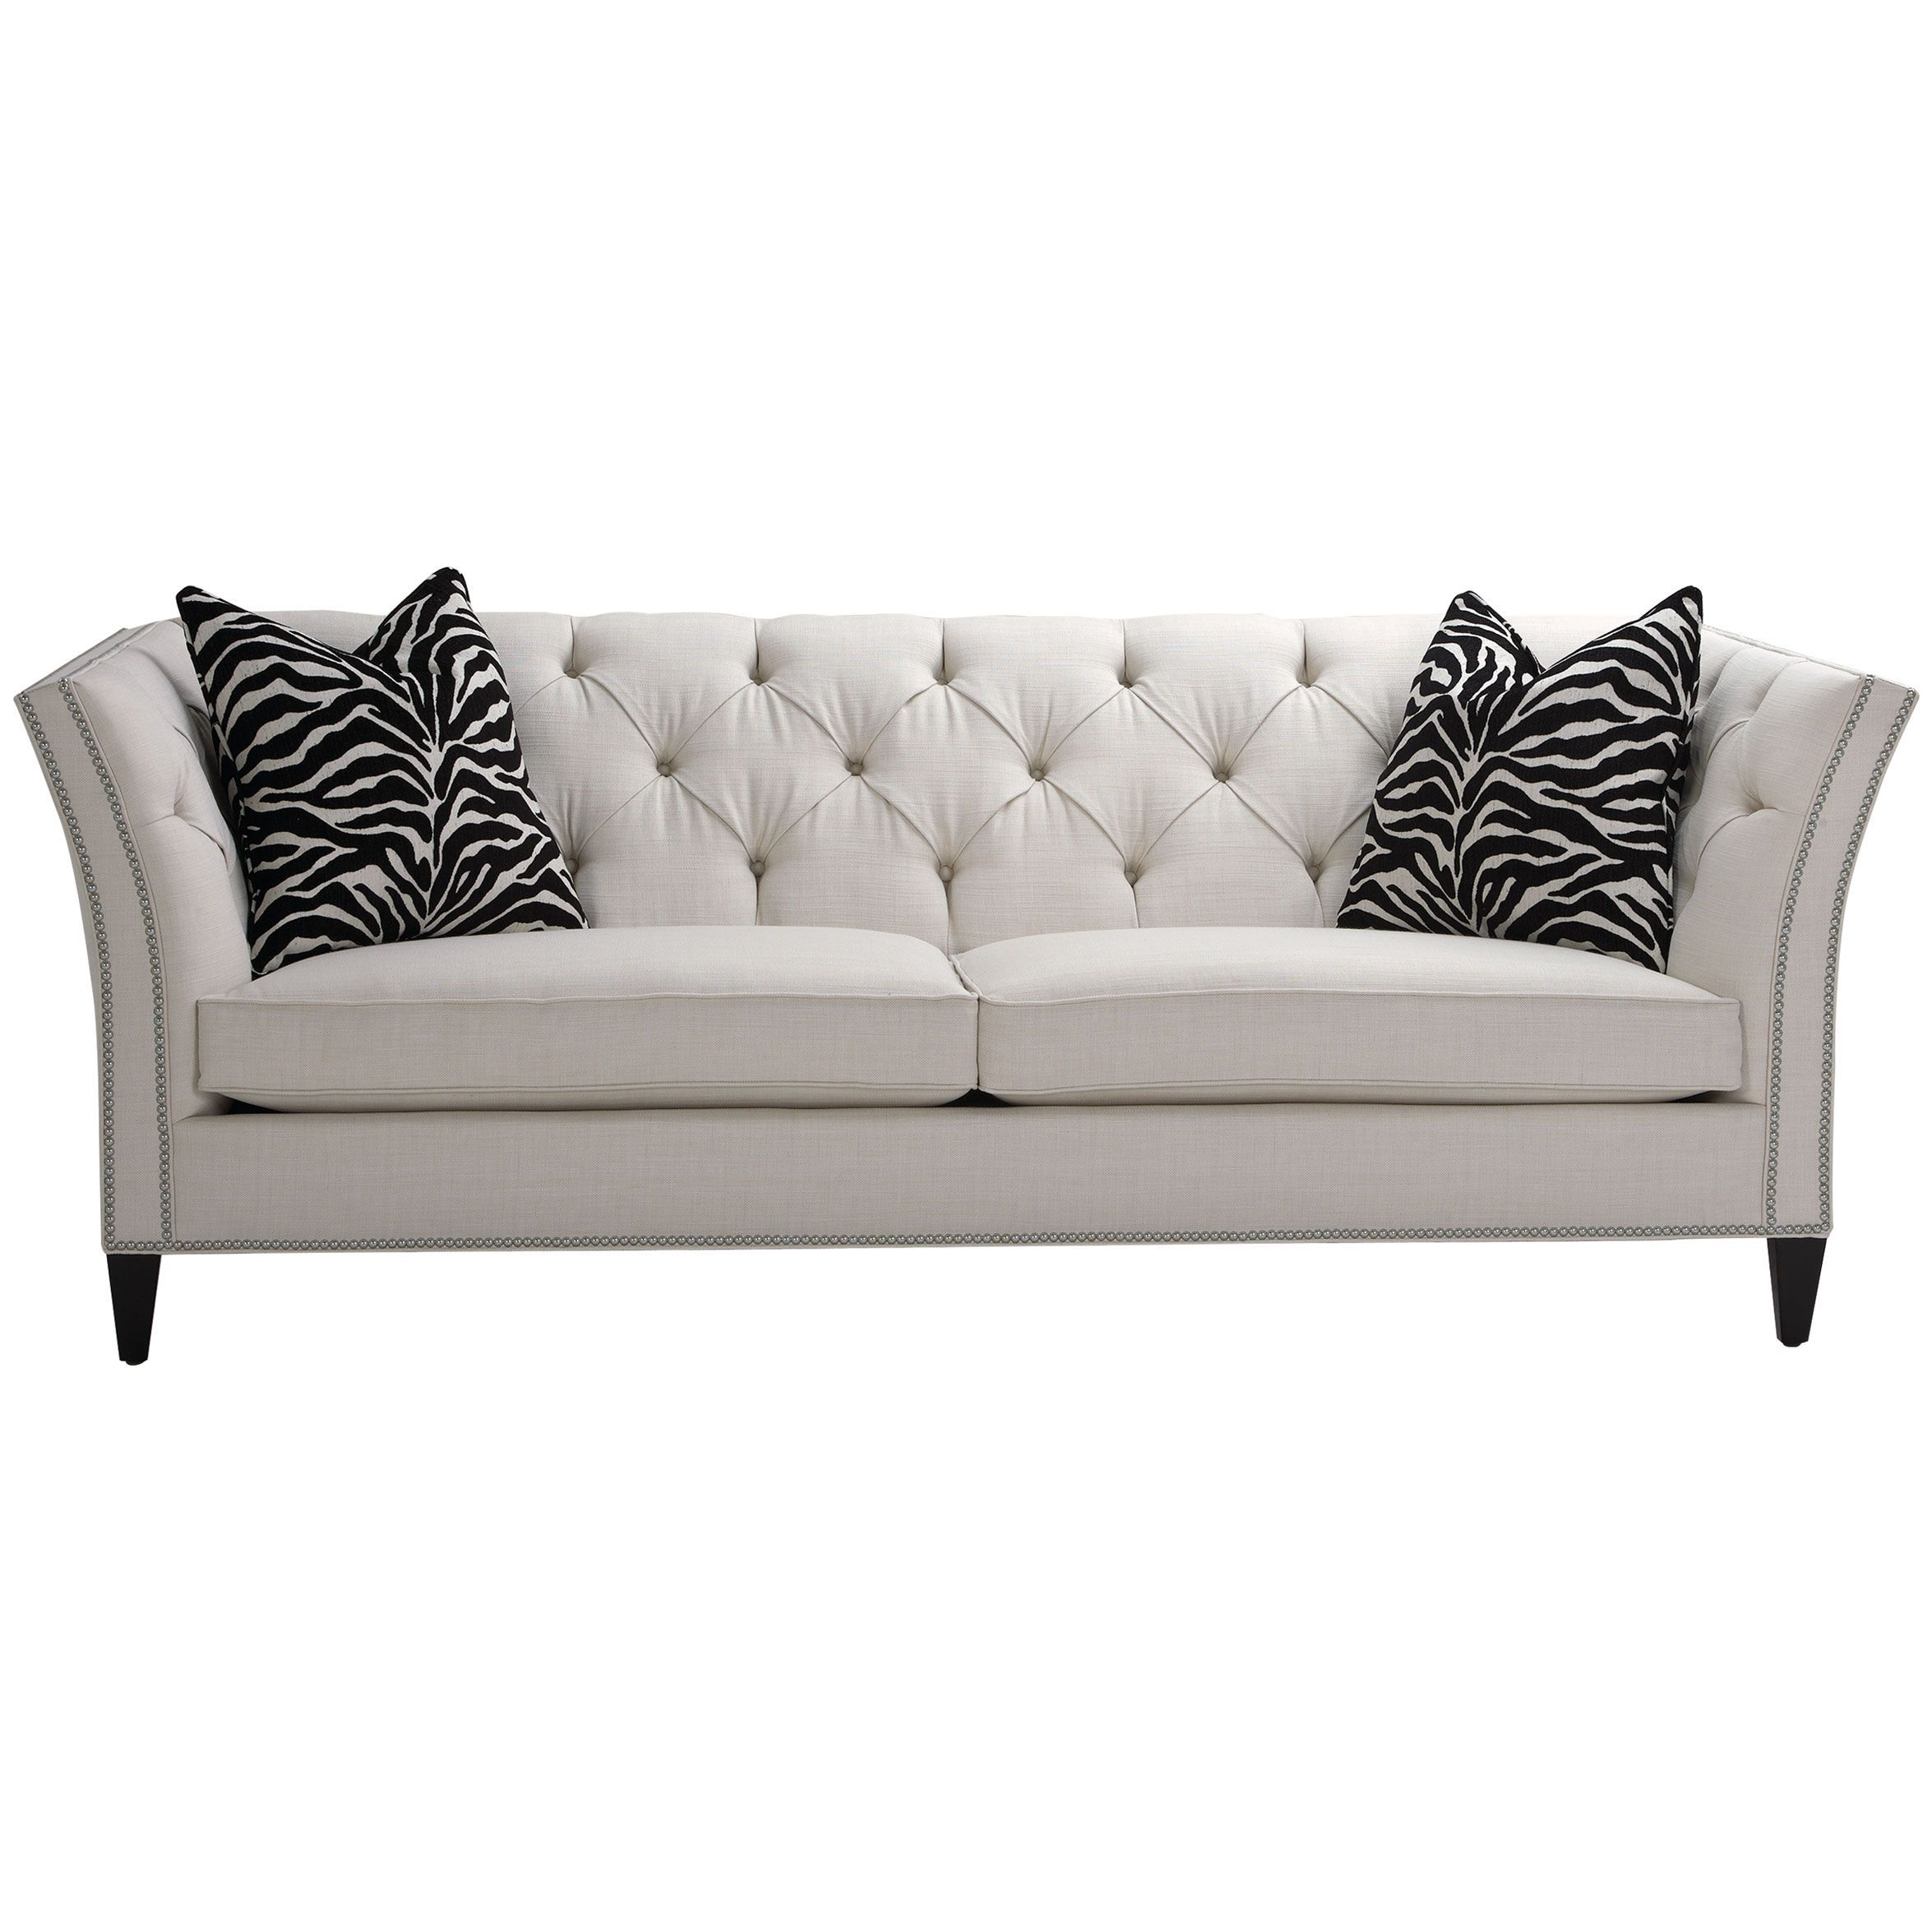 Shelton Sofas and Loveseats - Ethan Allen US | My office ...